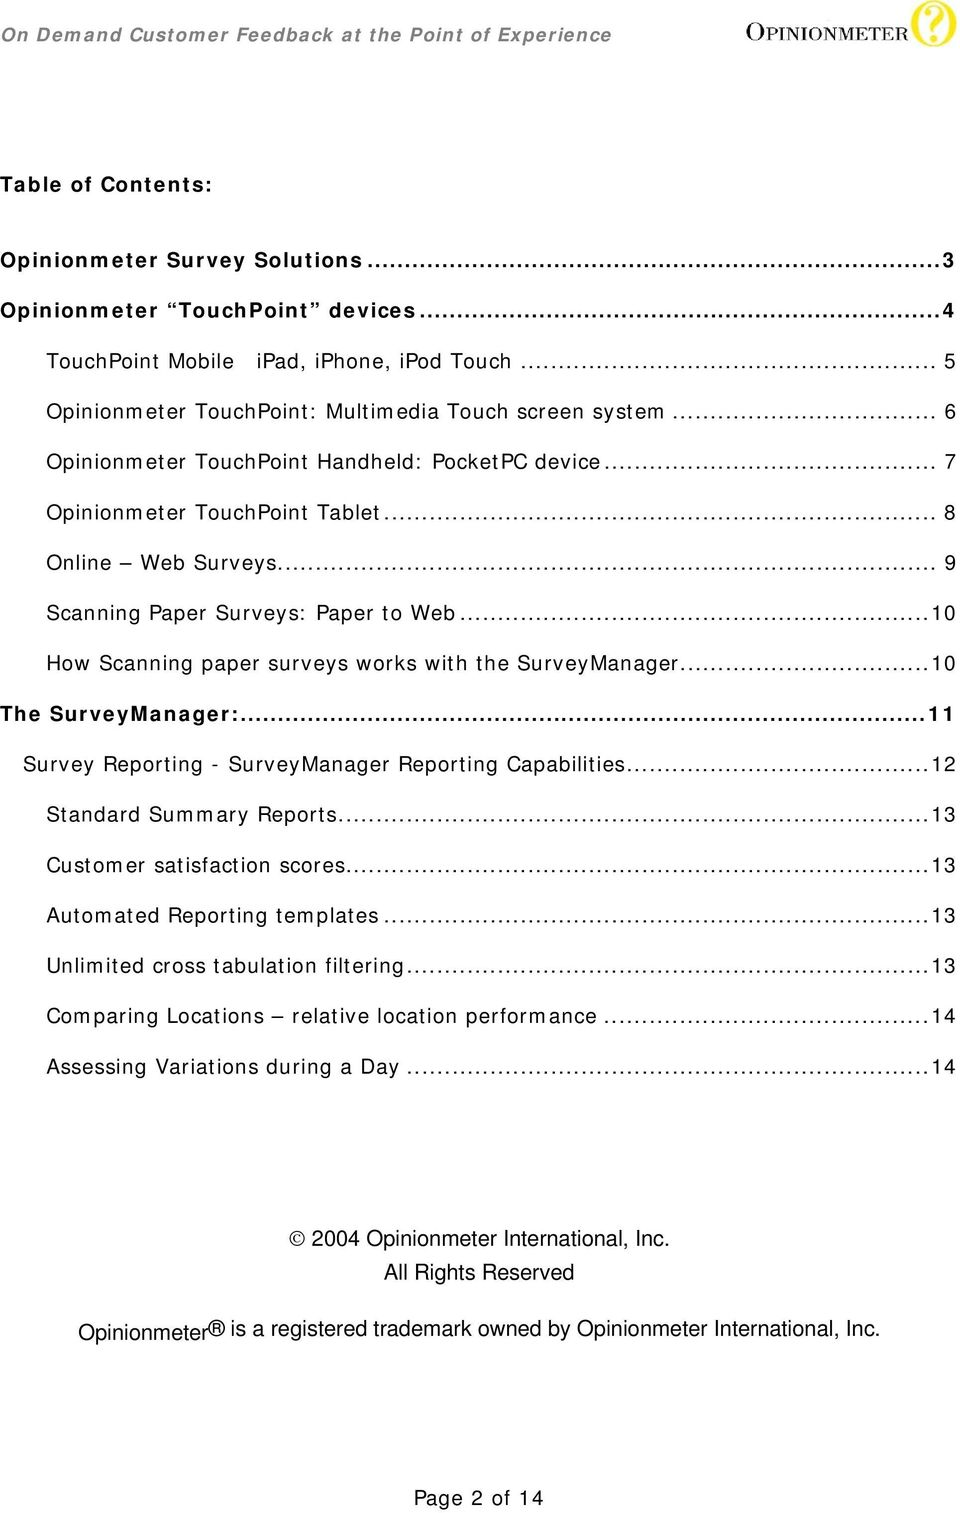 .. 10 How Scanning paper surveys works with the SurveyManager... 10 The SurveyManager:... 11 Survey Reporting - SurveyManager Reporting Capabilities... 12 Standard Summary Reports.